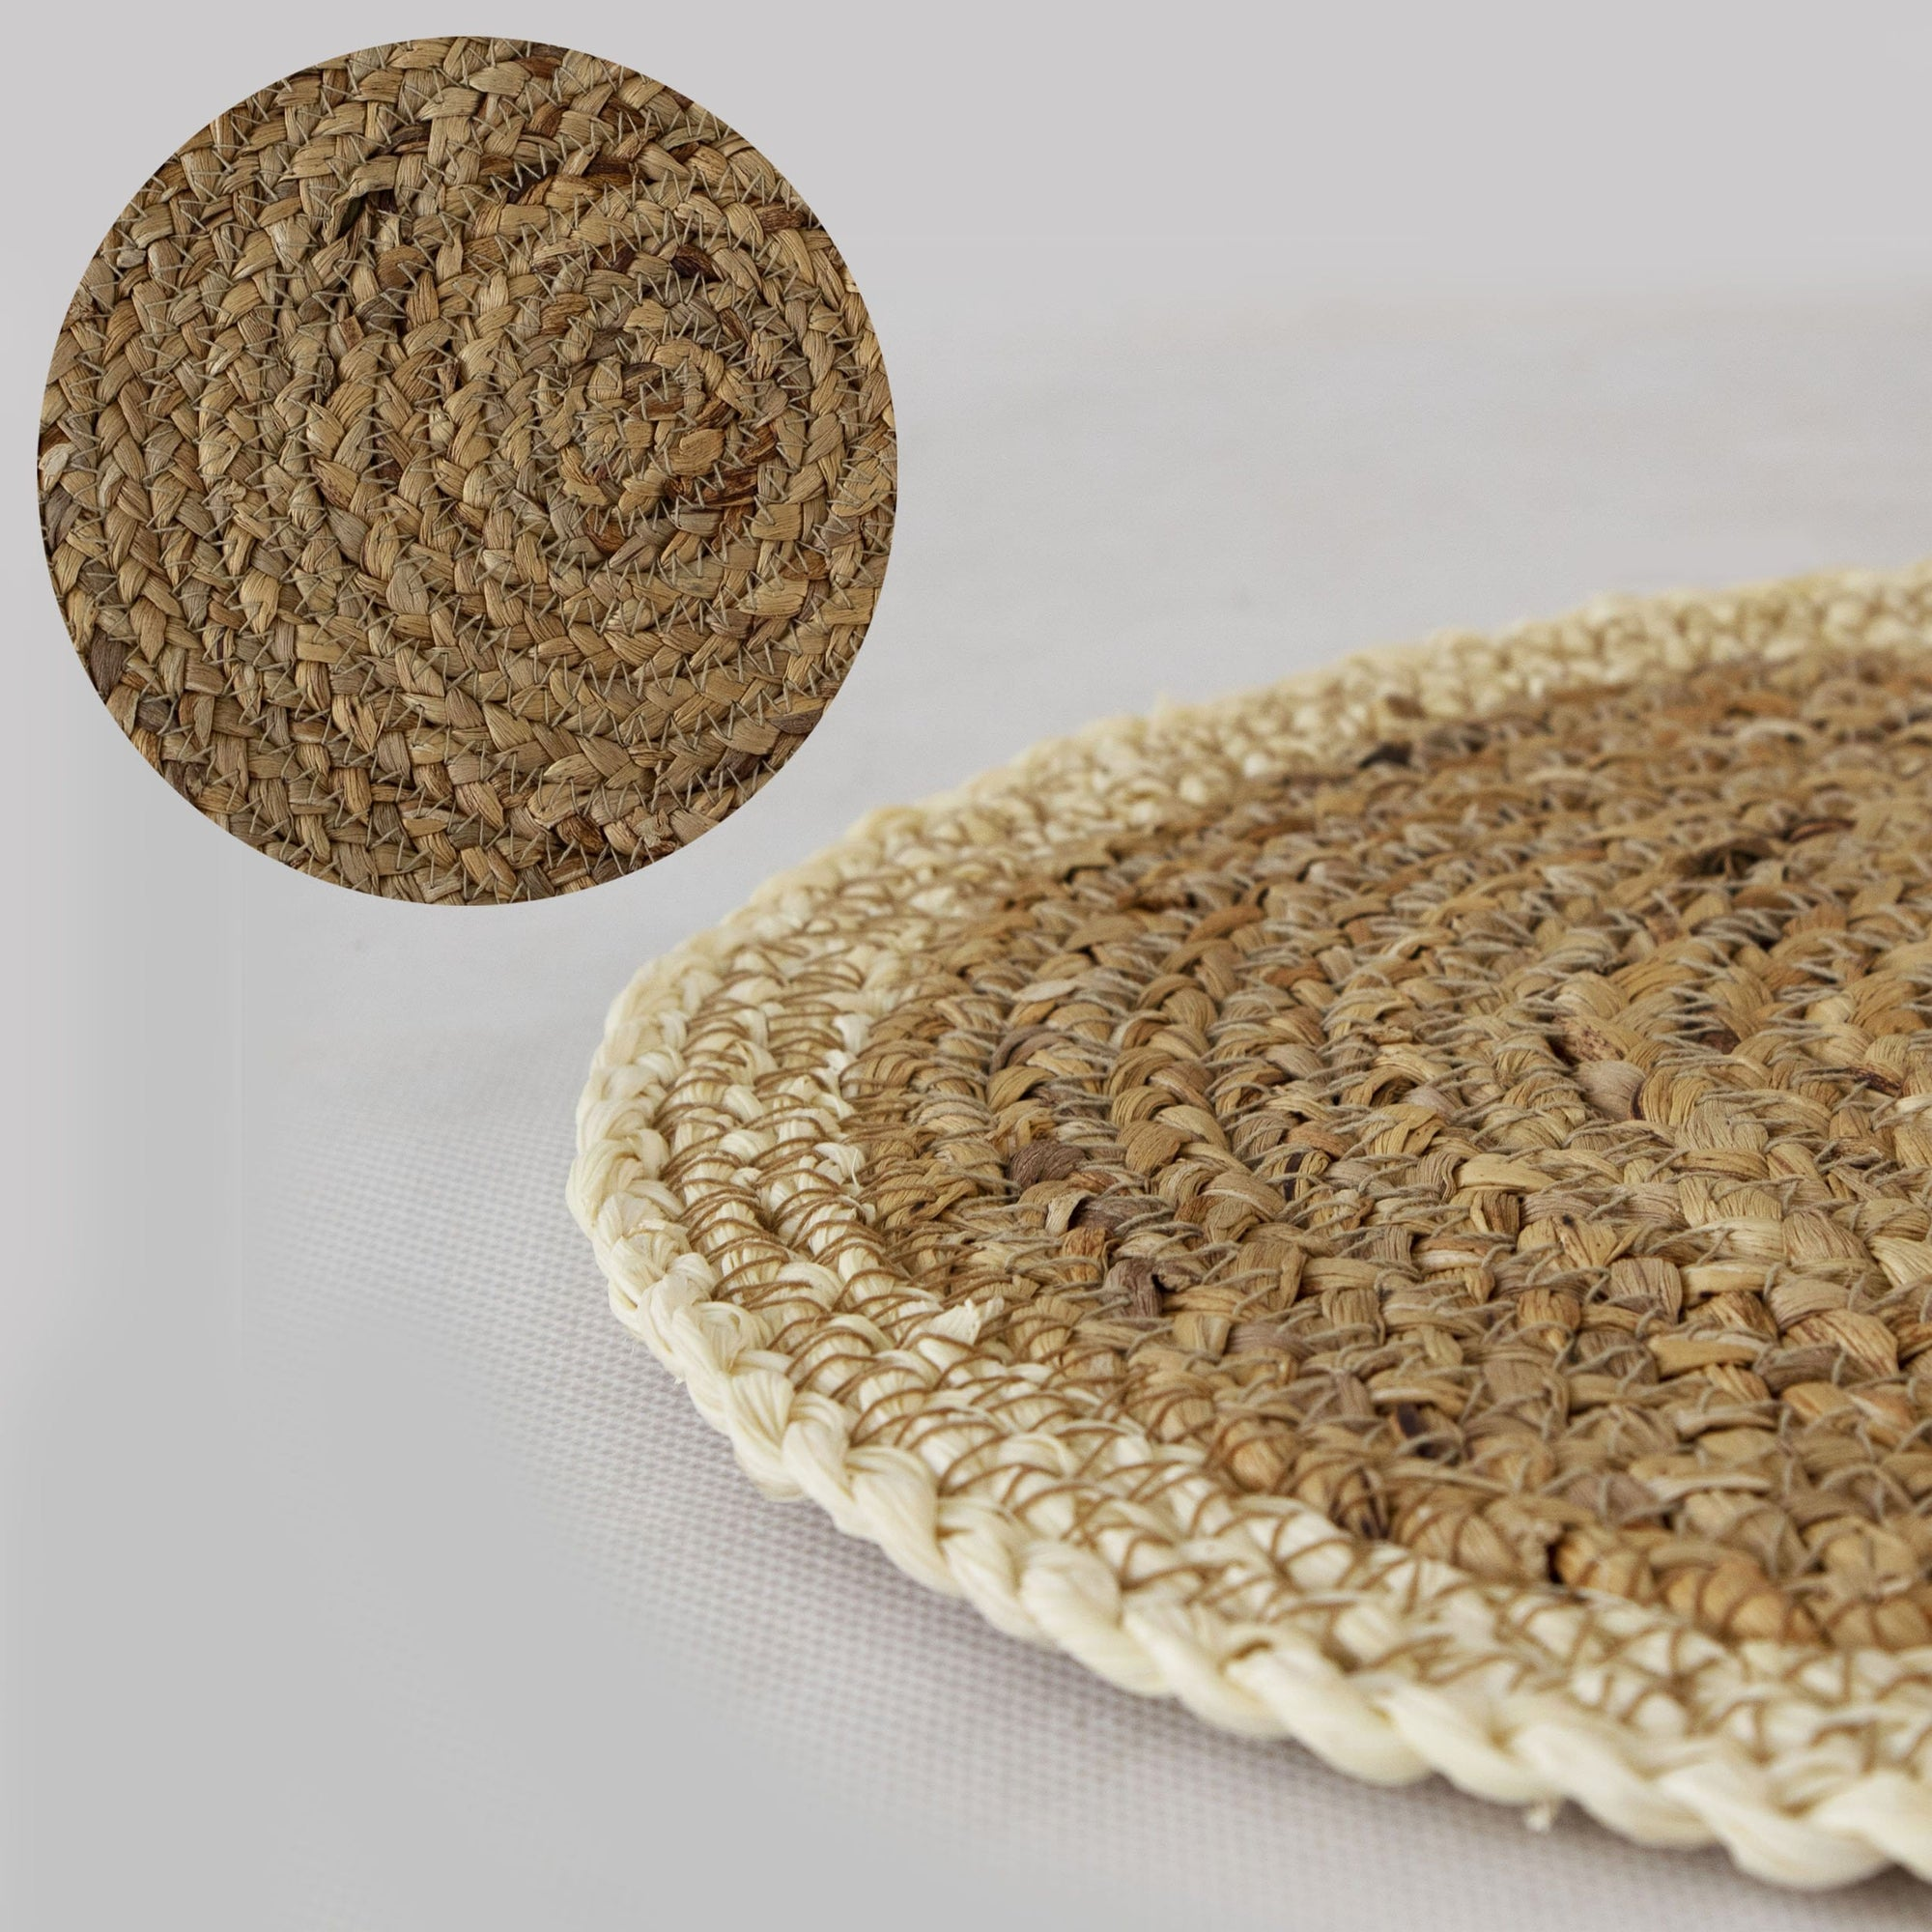 Woven Placemats For Dining Table Wicker Braided Placemat For Dinner Made Terra